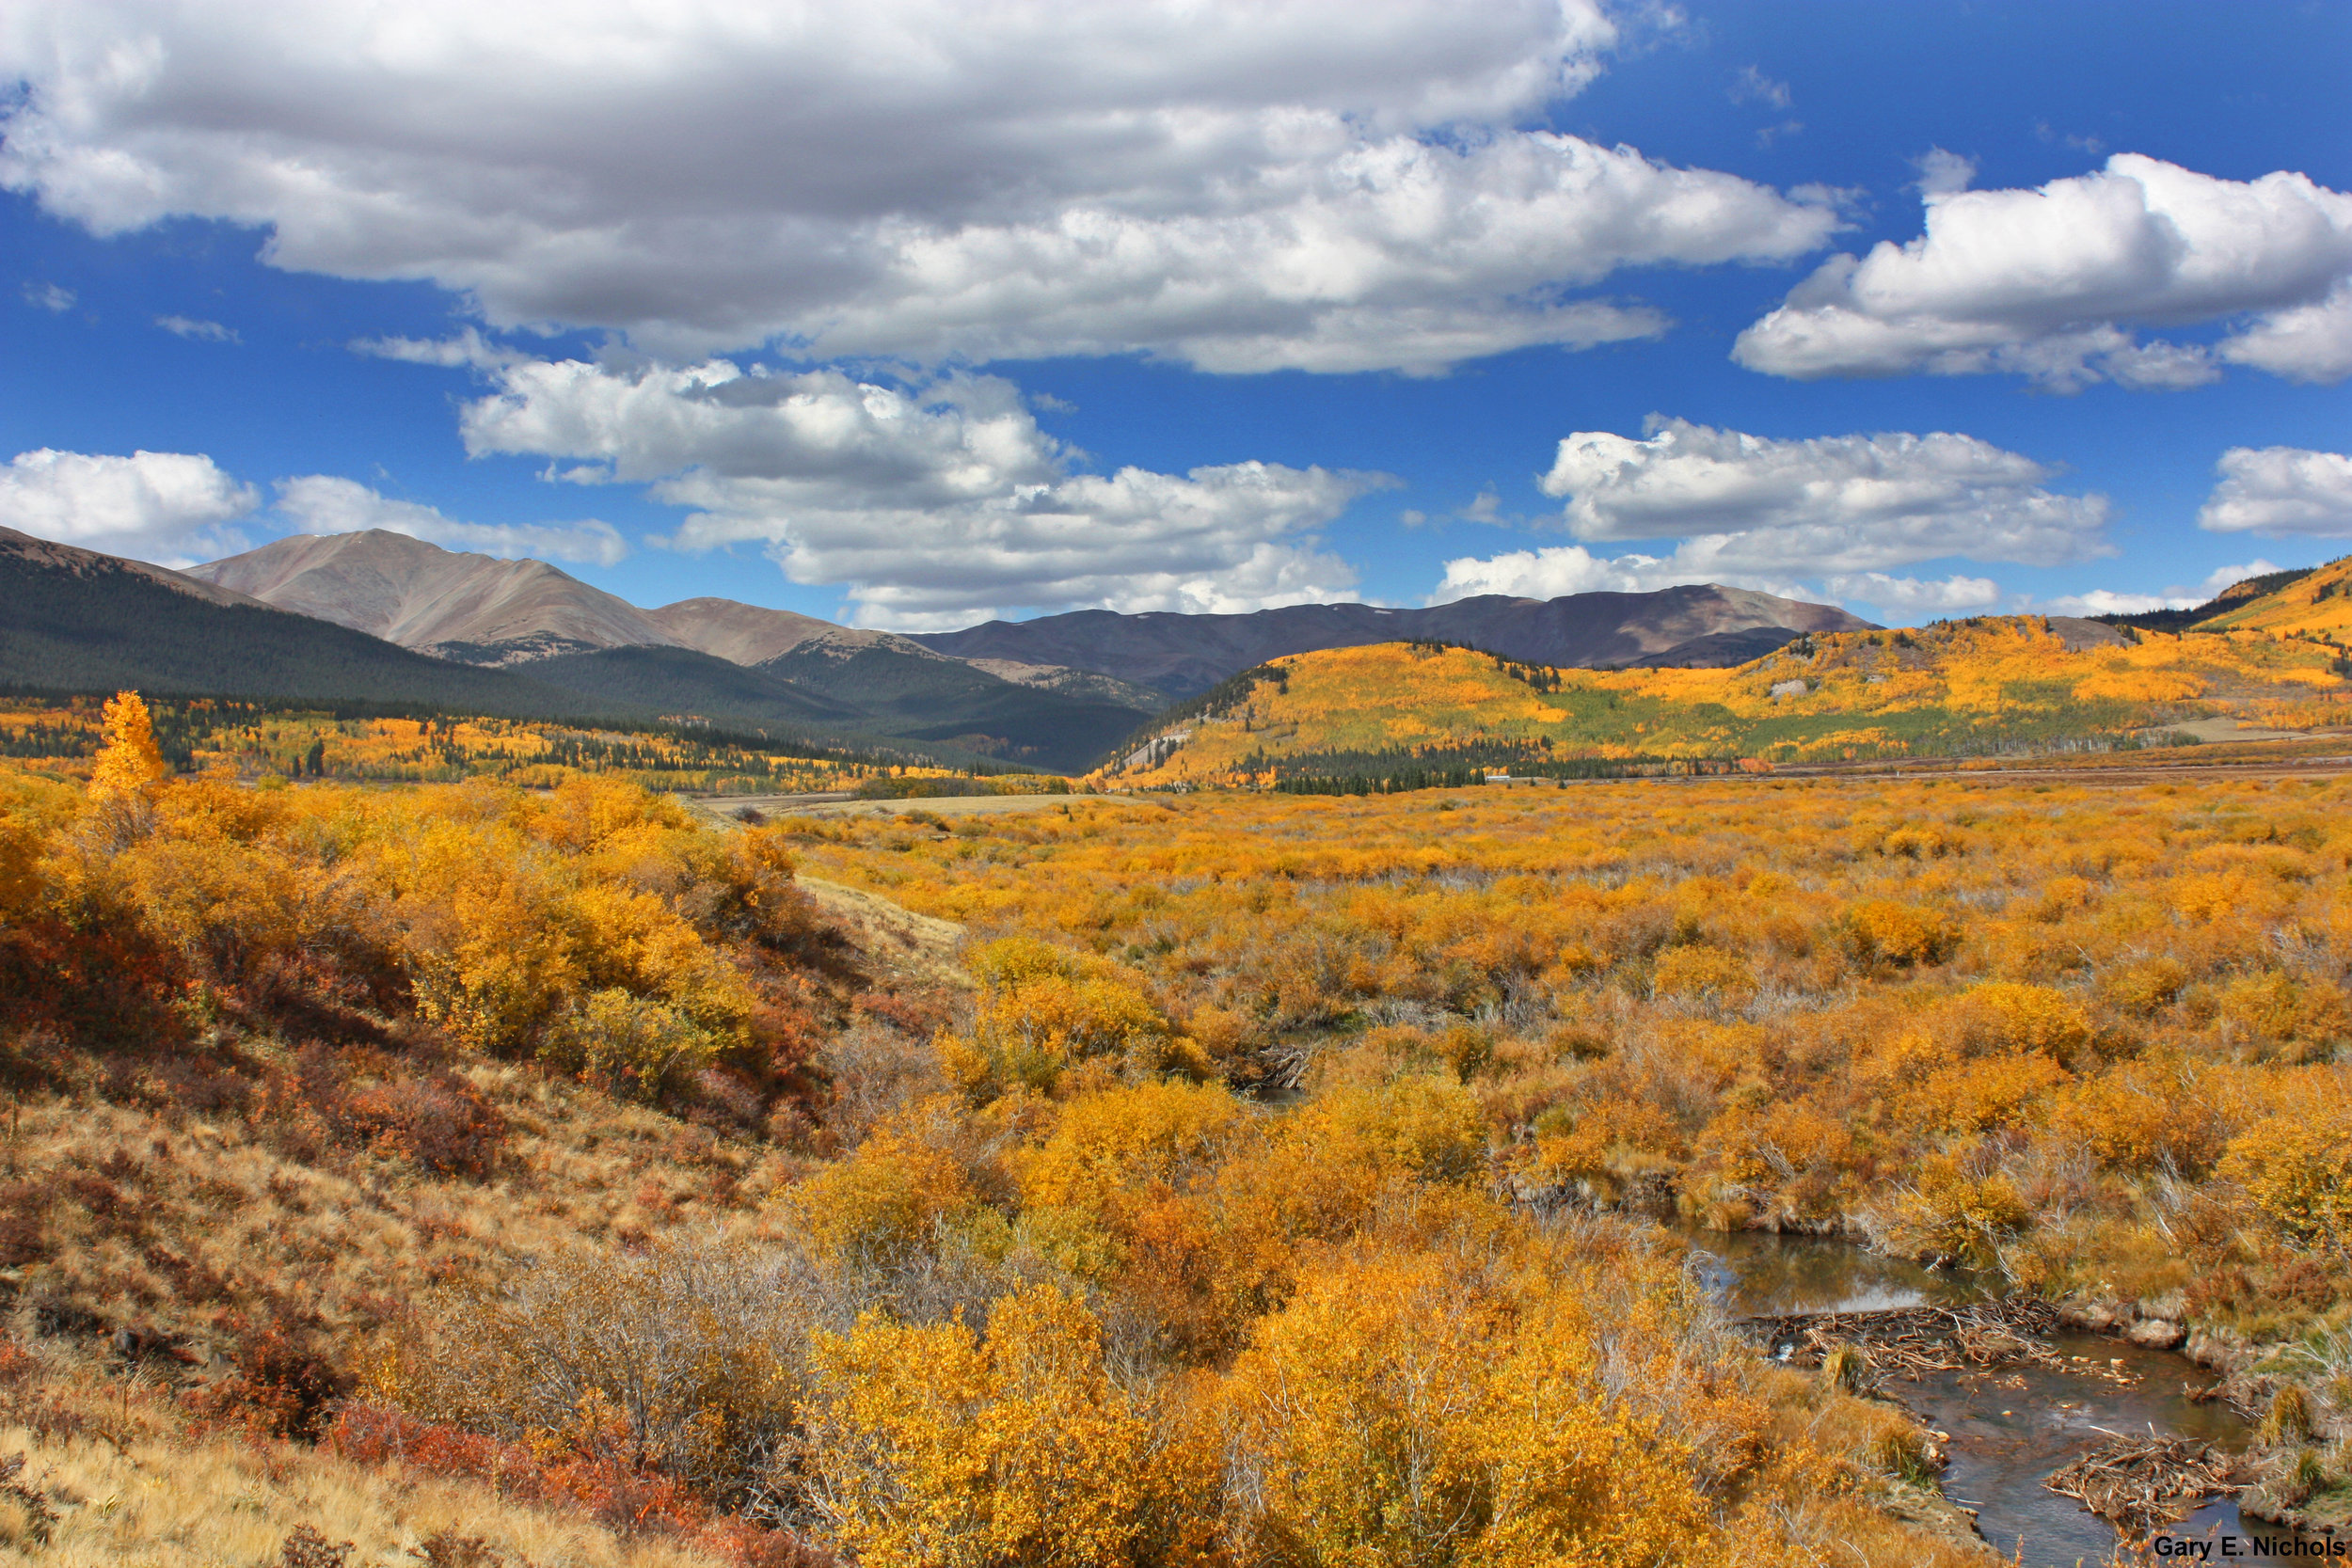 Cline Ranch - It's not all about Aspens when it comes to fall beauty. Valleys all along HWY 285 display their true colors too. Photo by: Gary E. Nichols